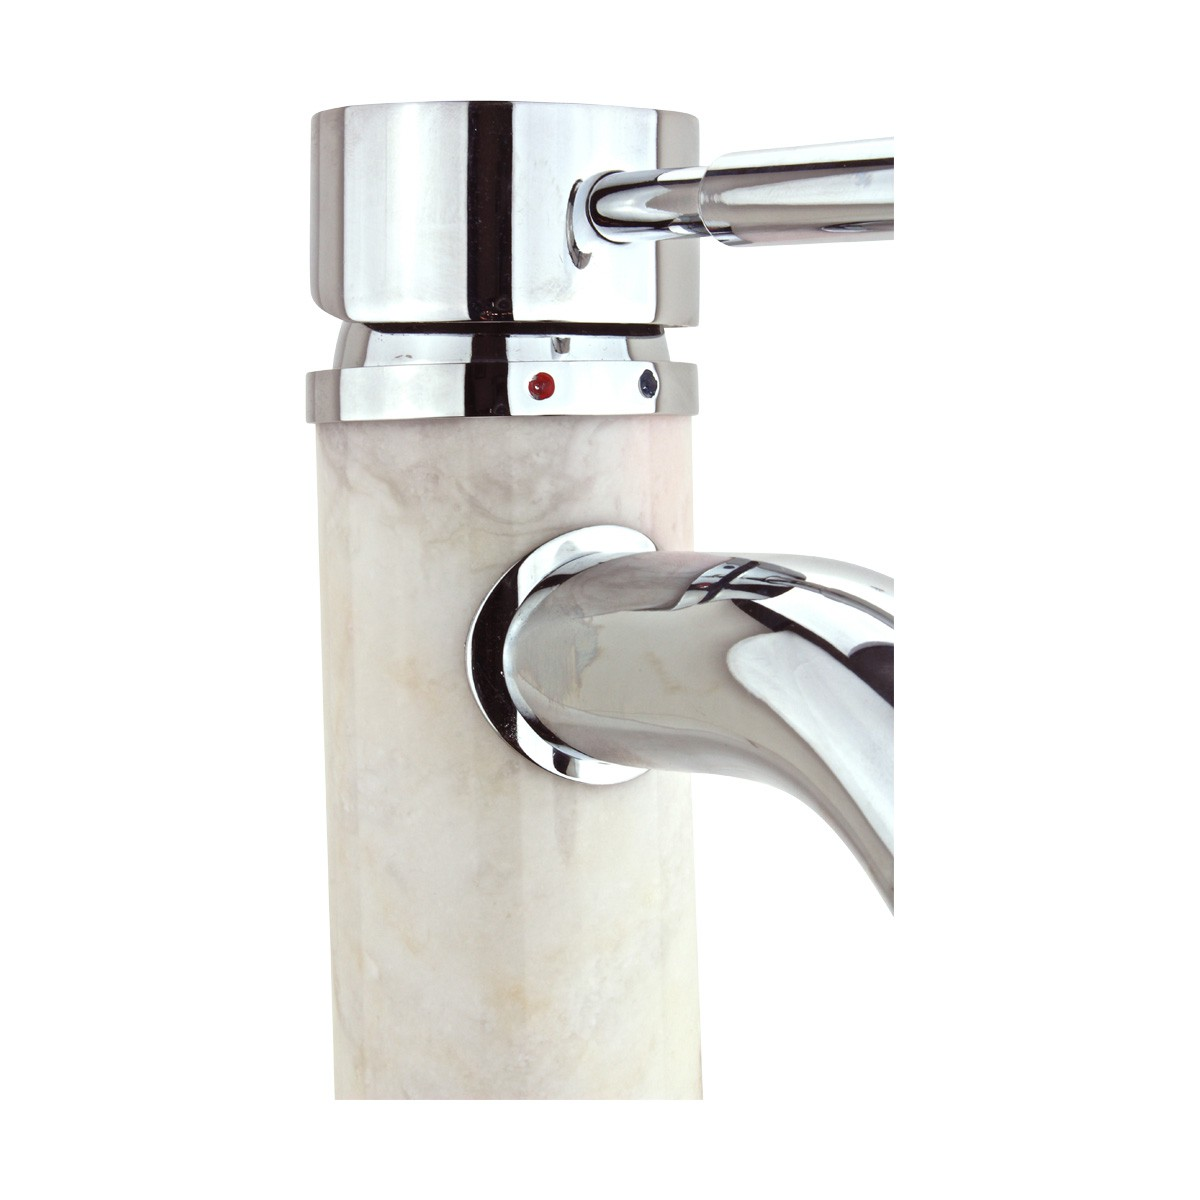 Bathroom White Marble Faucet Chrome Single Hole 1 Handle Faucets Bathroom Faucets Single Hole Faucet